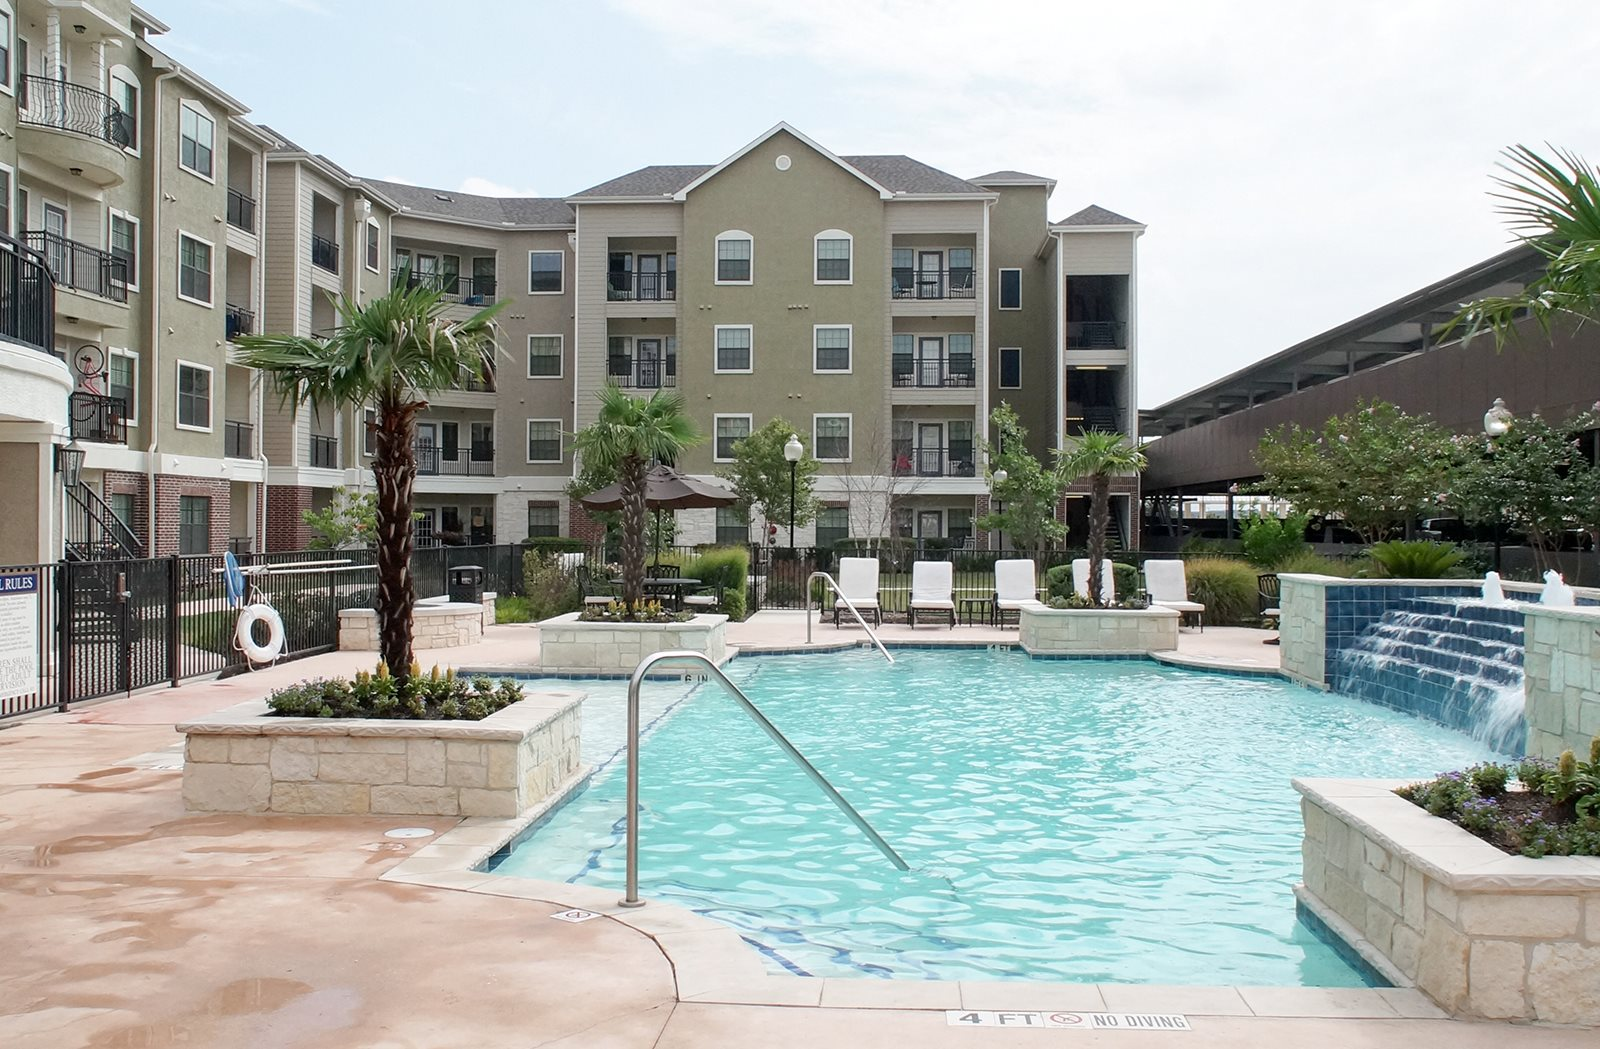 pool with lounge chairs Creekside Vue Apt Living l New Braunfels, TX